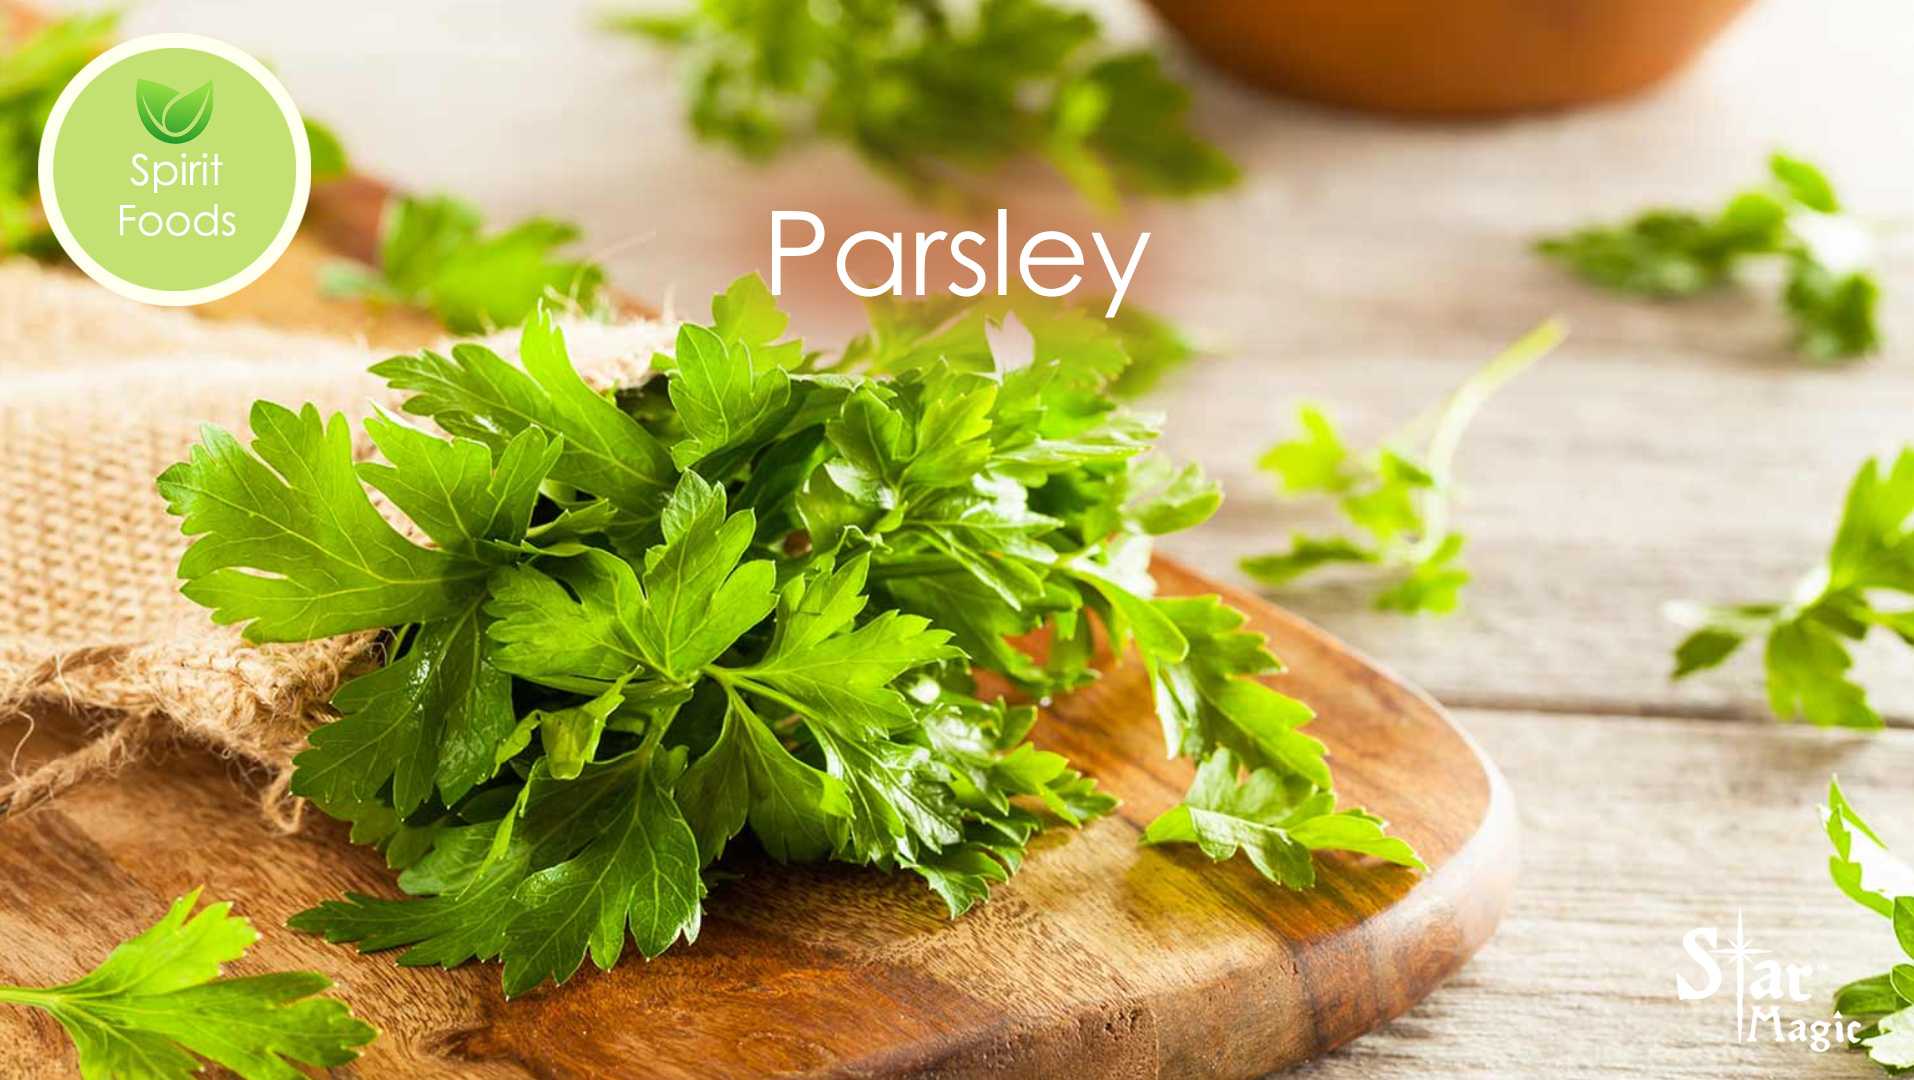 Spirit Food – Parsley